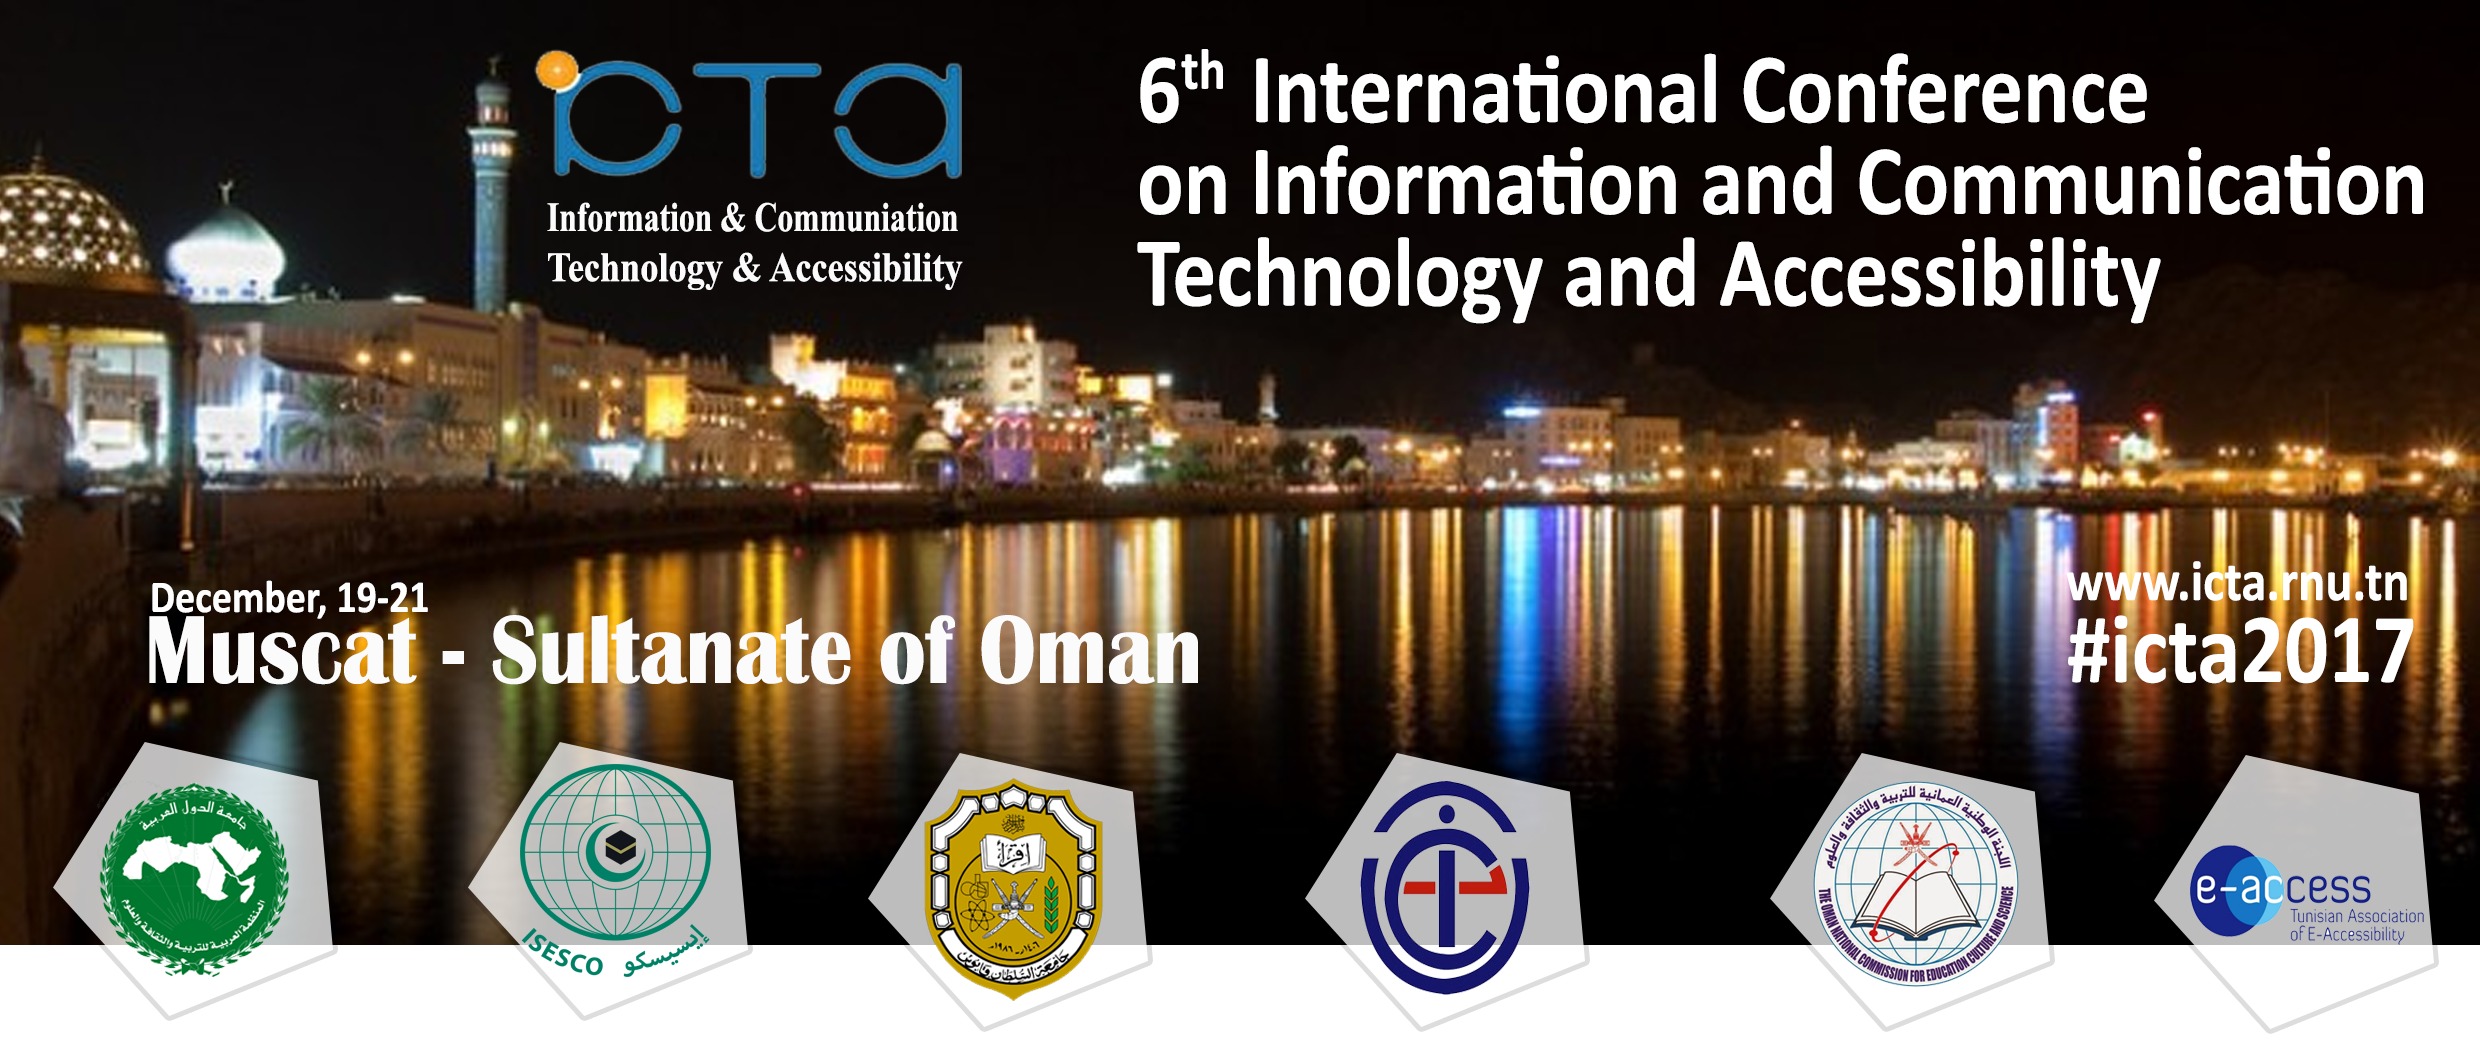 6th International Conference on Information and Communication Technology and Accessibility ICTA 2017